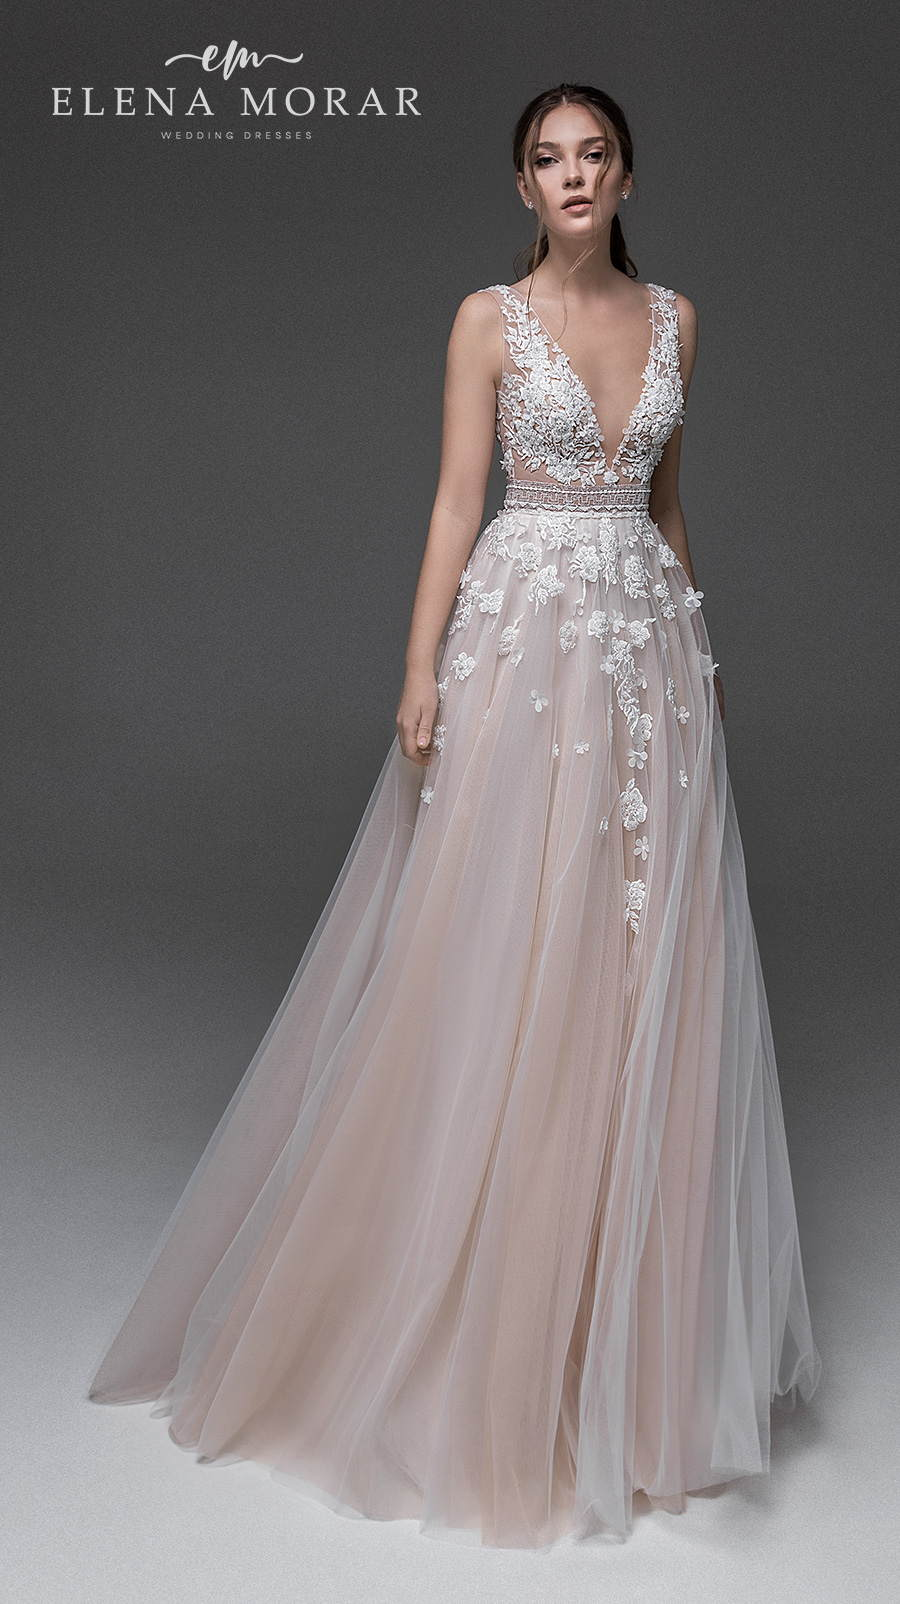 elena morar 2021 desert rose bridal sleeveless deep v neck heavily embellished bodice romantic blush soft a line wedding dress v back sweep train (021) mv